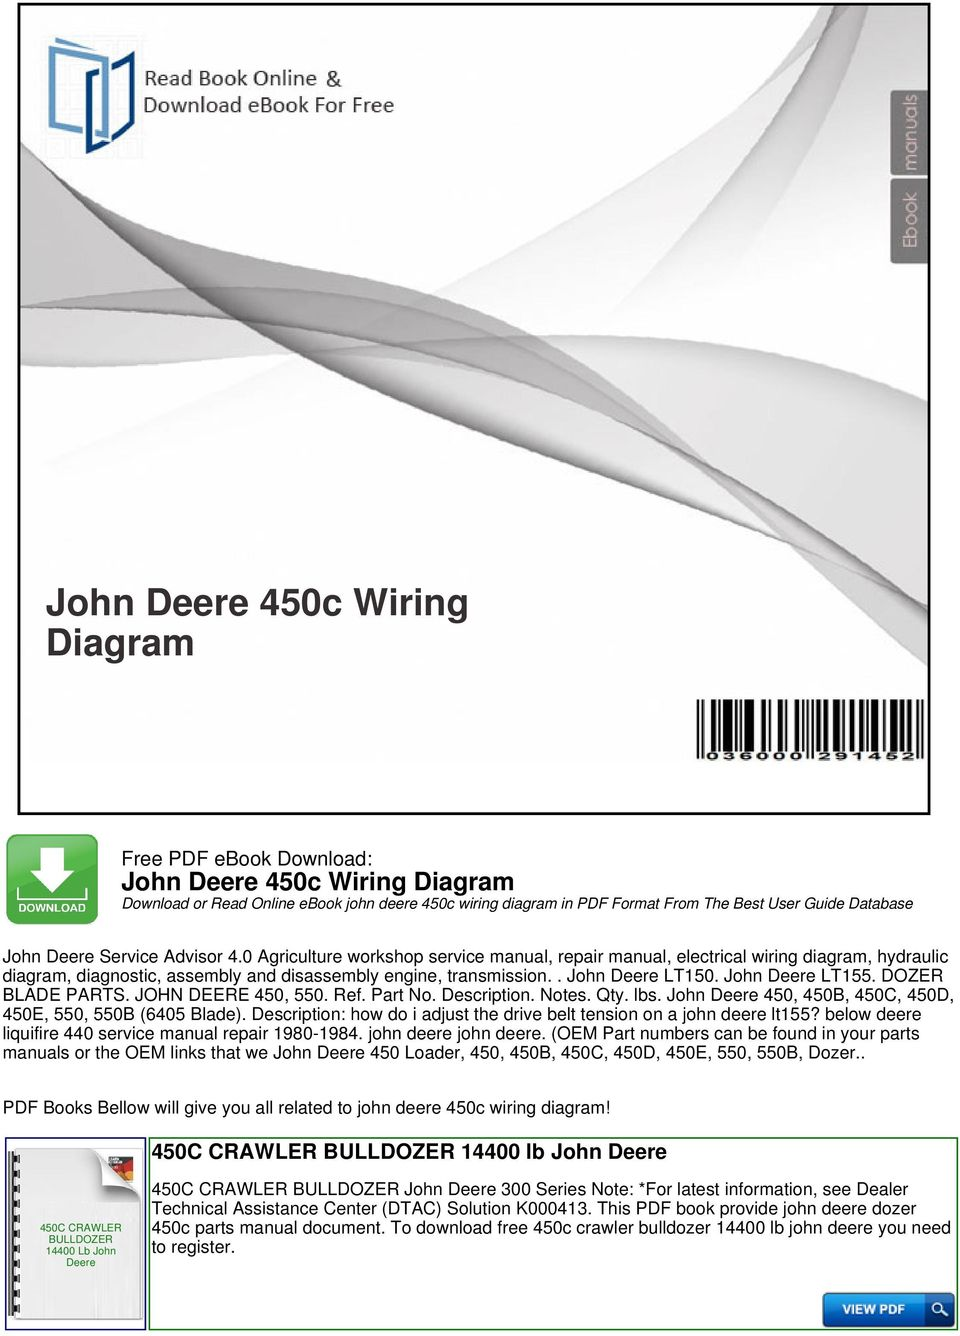 John Deere 450c Wiring Diagram Pdf 332 450 550 Ref Part No Description